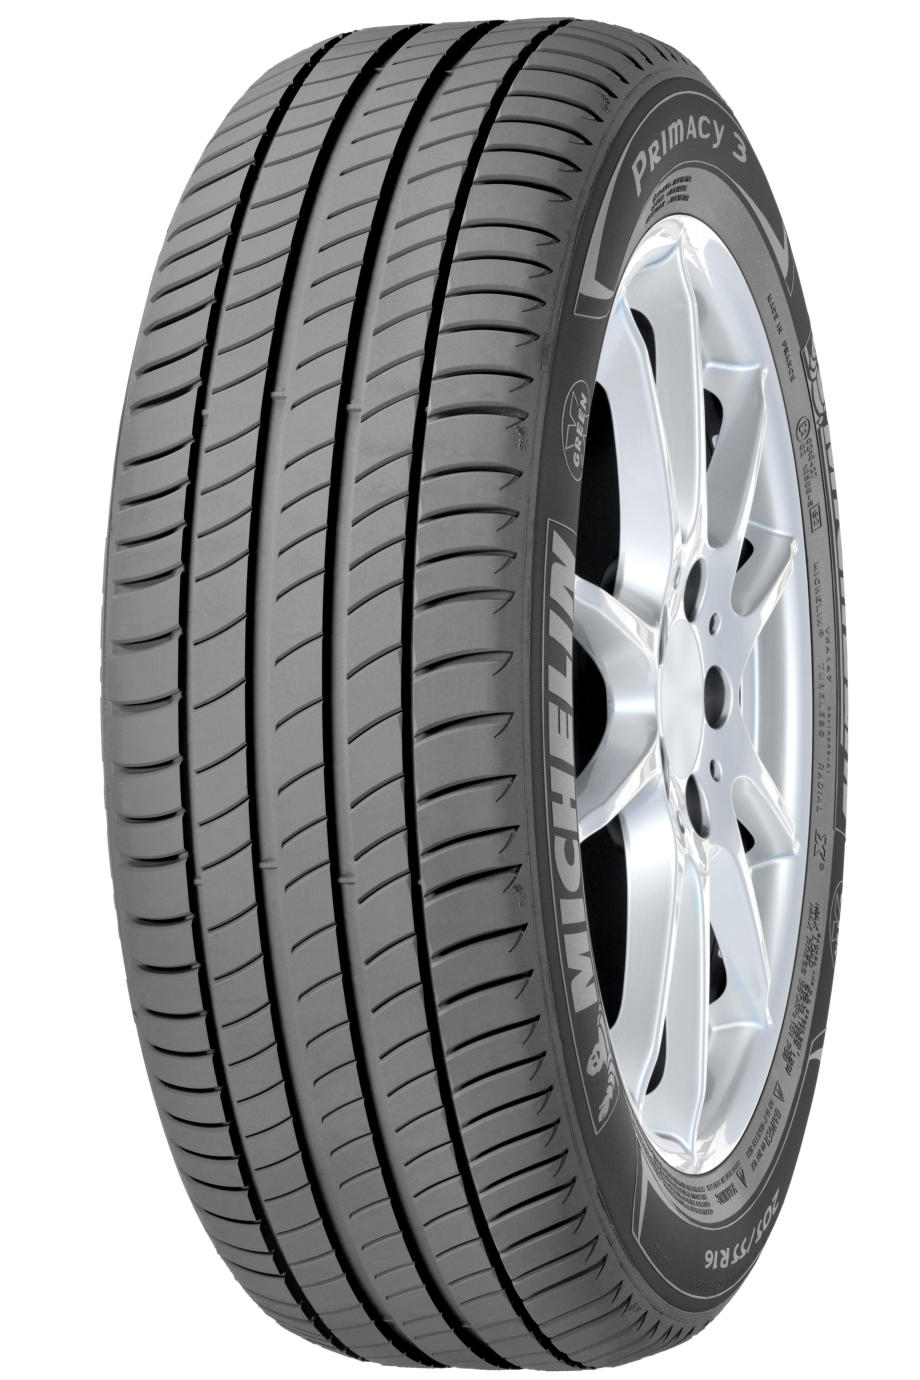 205/45 R17 Michelin Primacy 3 88V